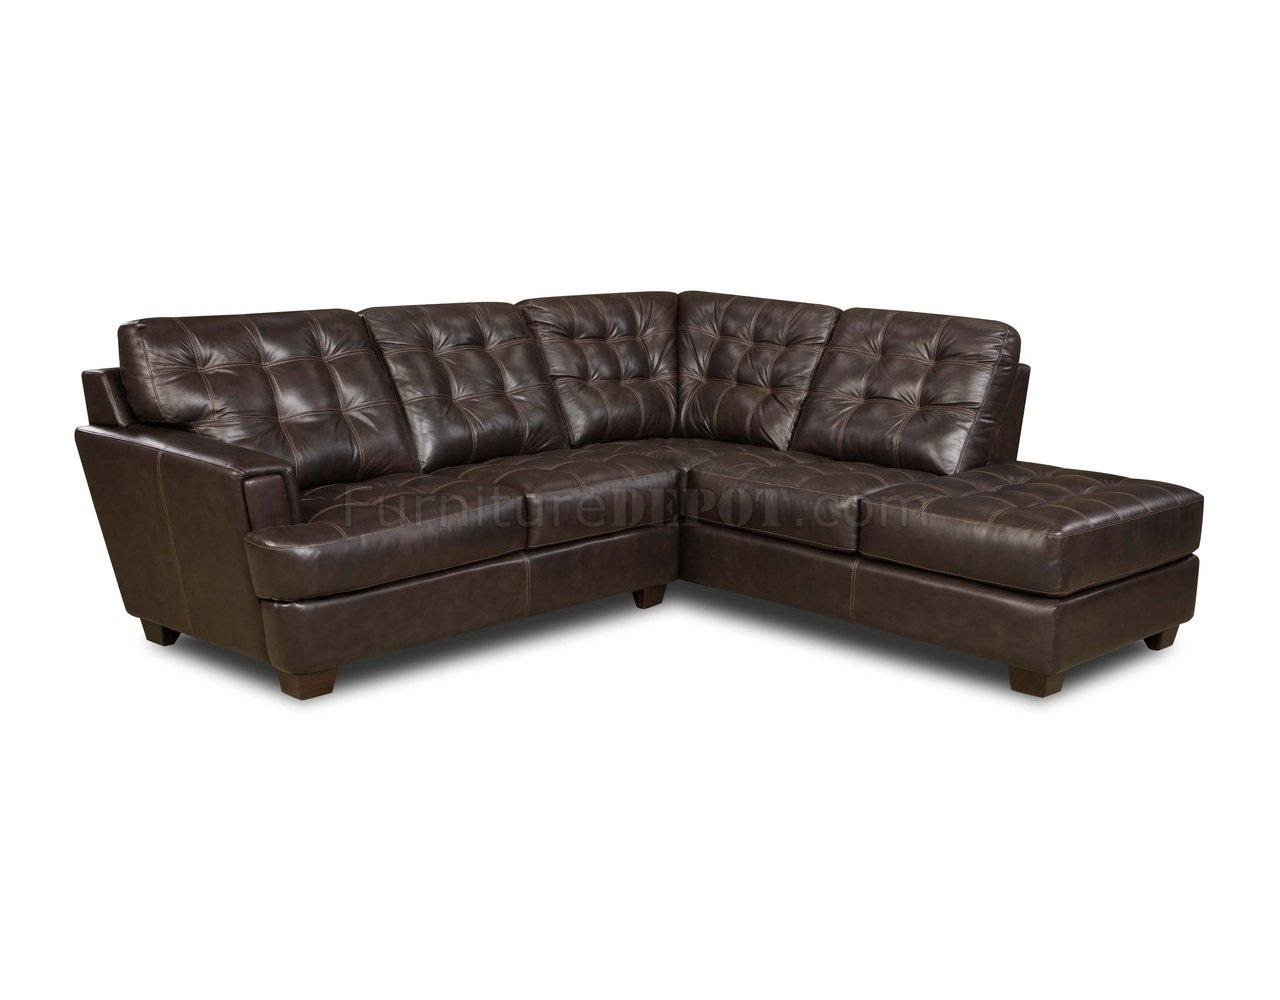 leather sectional sofa tufted brown family room top grain italian modern